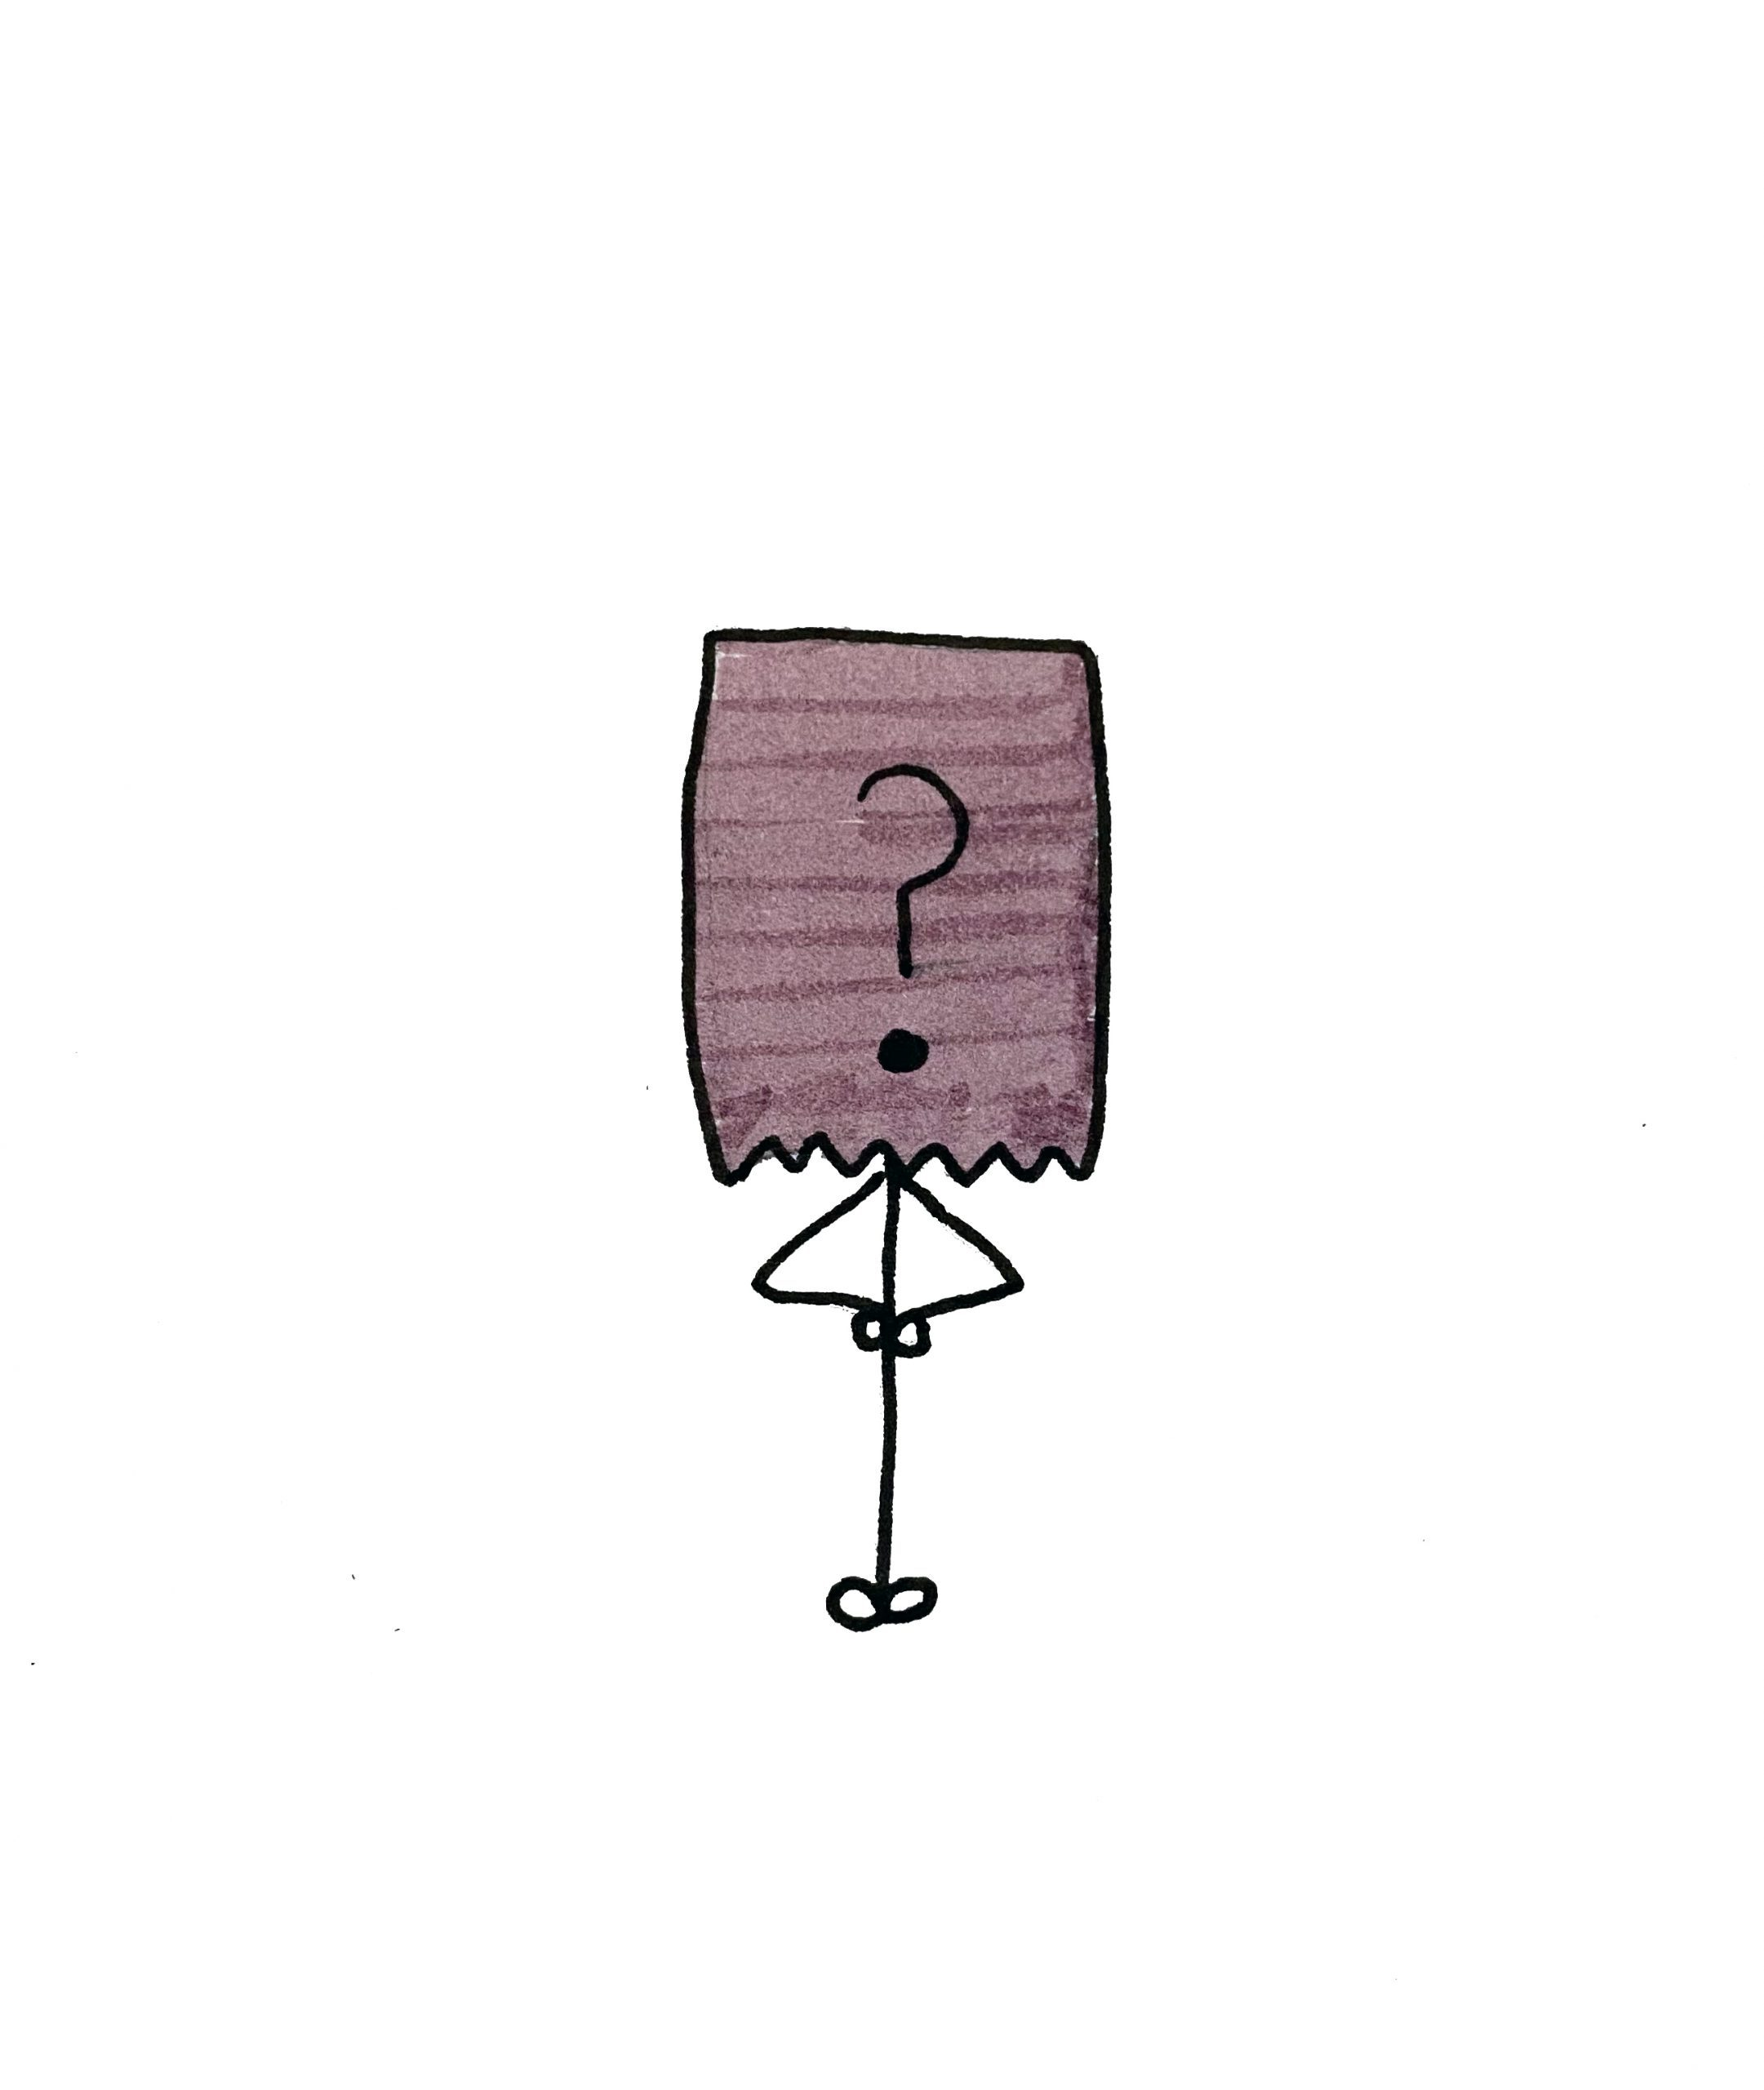 Illustration: Person hiding in a paper bag